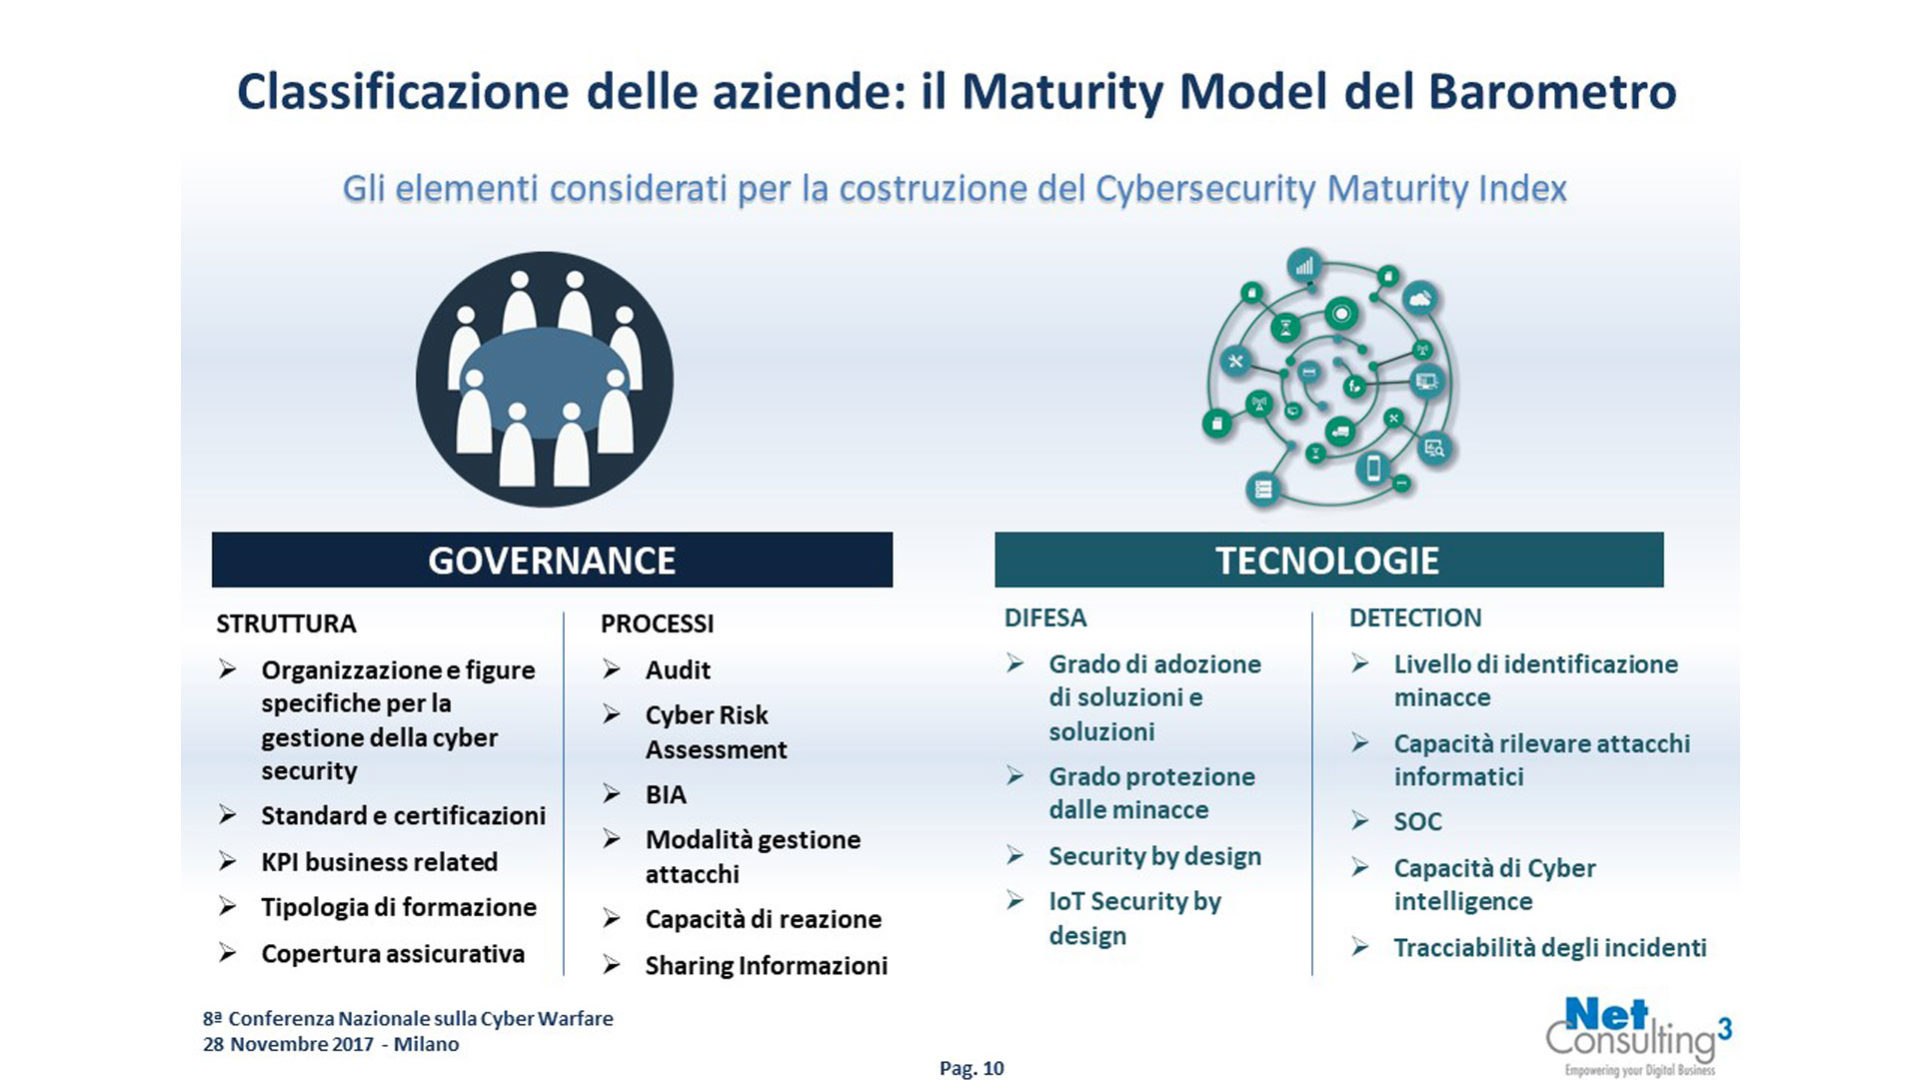 Classificazione aziende il Maturity Model del Barometro Cybersecurity